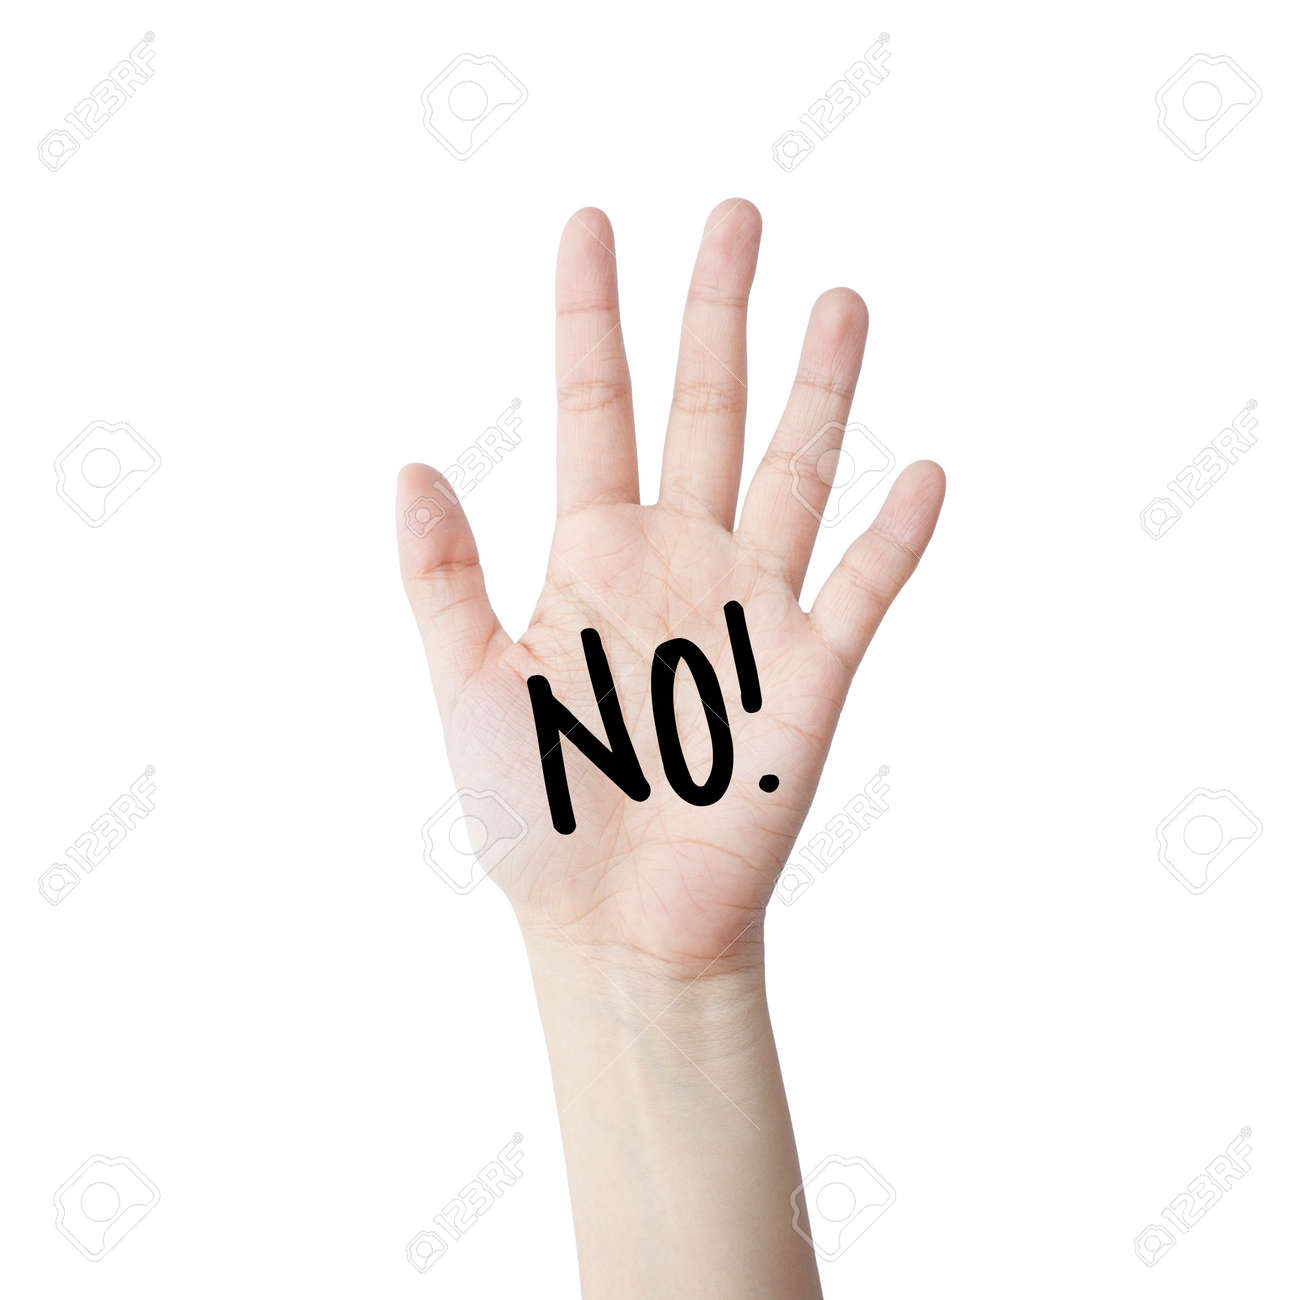 Say no. hand isolated on white background - 32173588